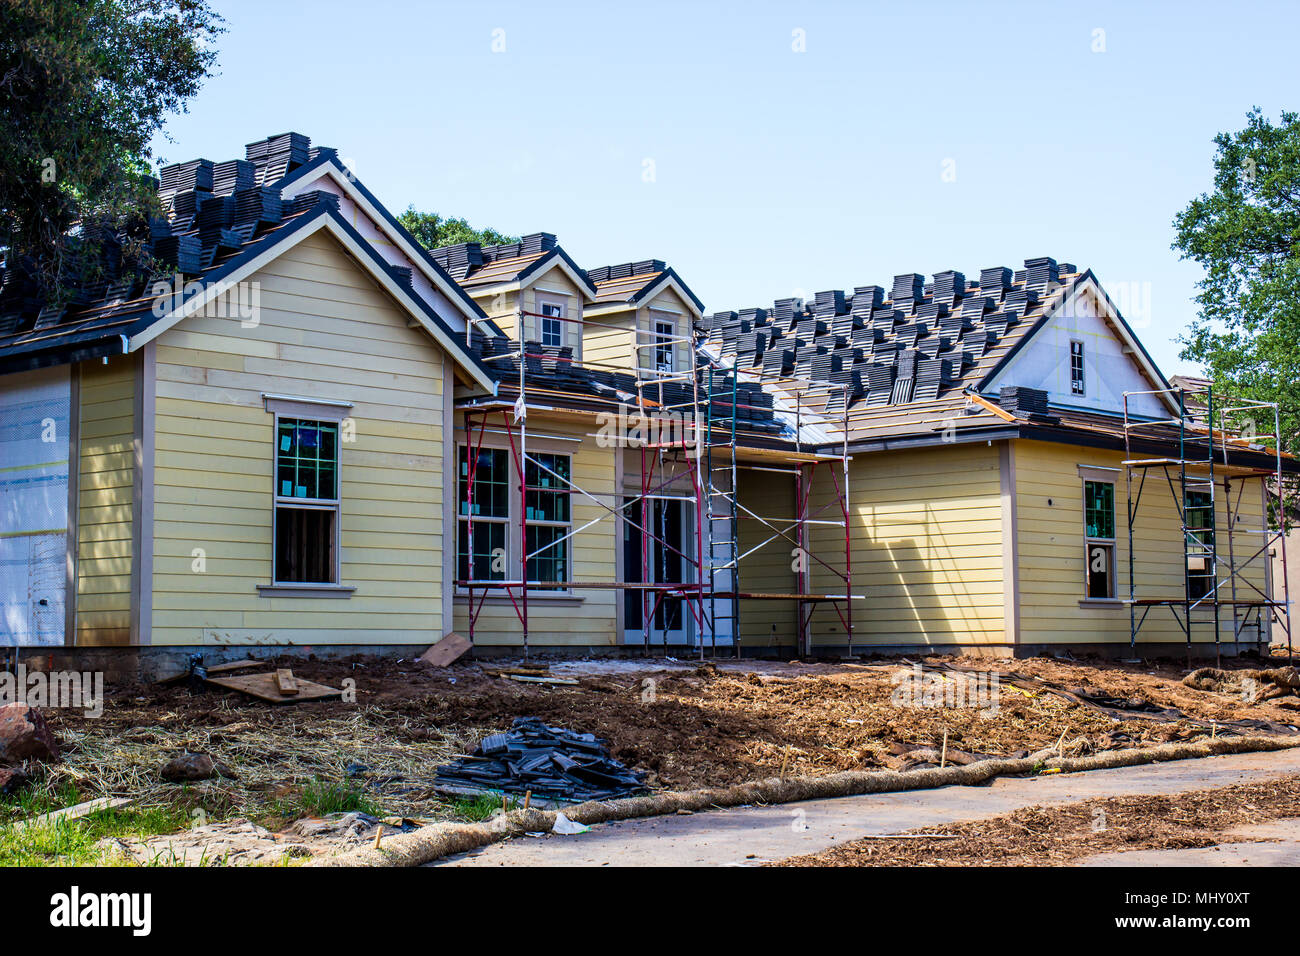 New Home Construction With Scaffolding & Roofing Materials - Stock Image